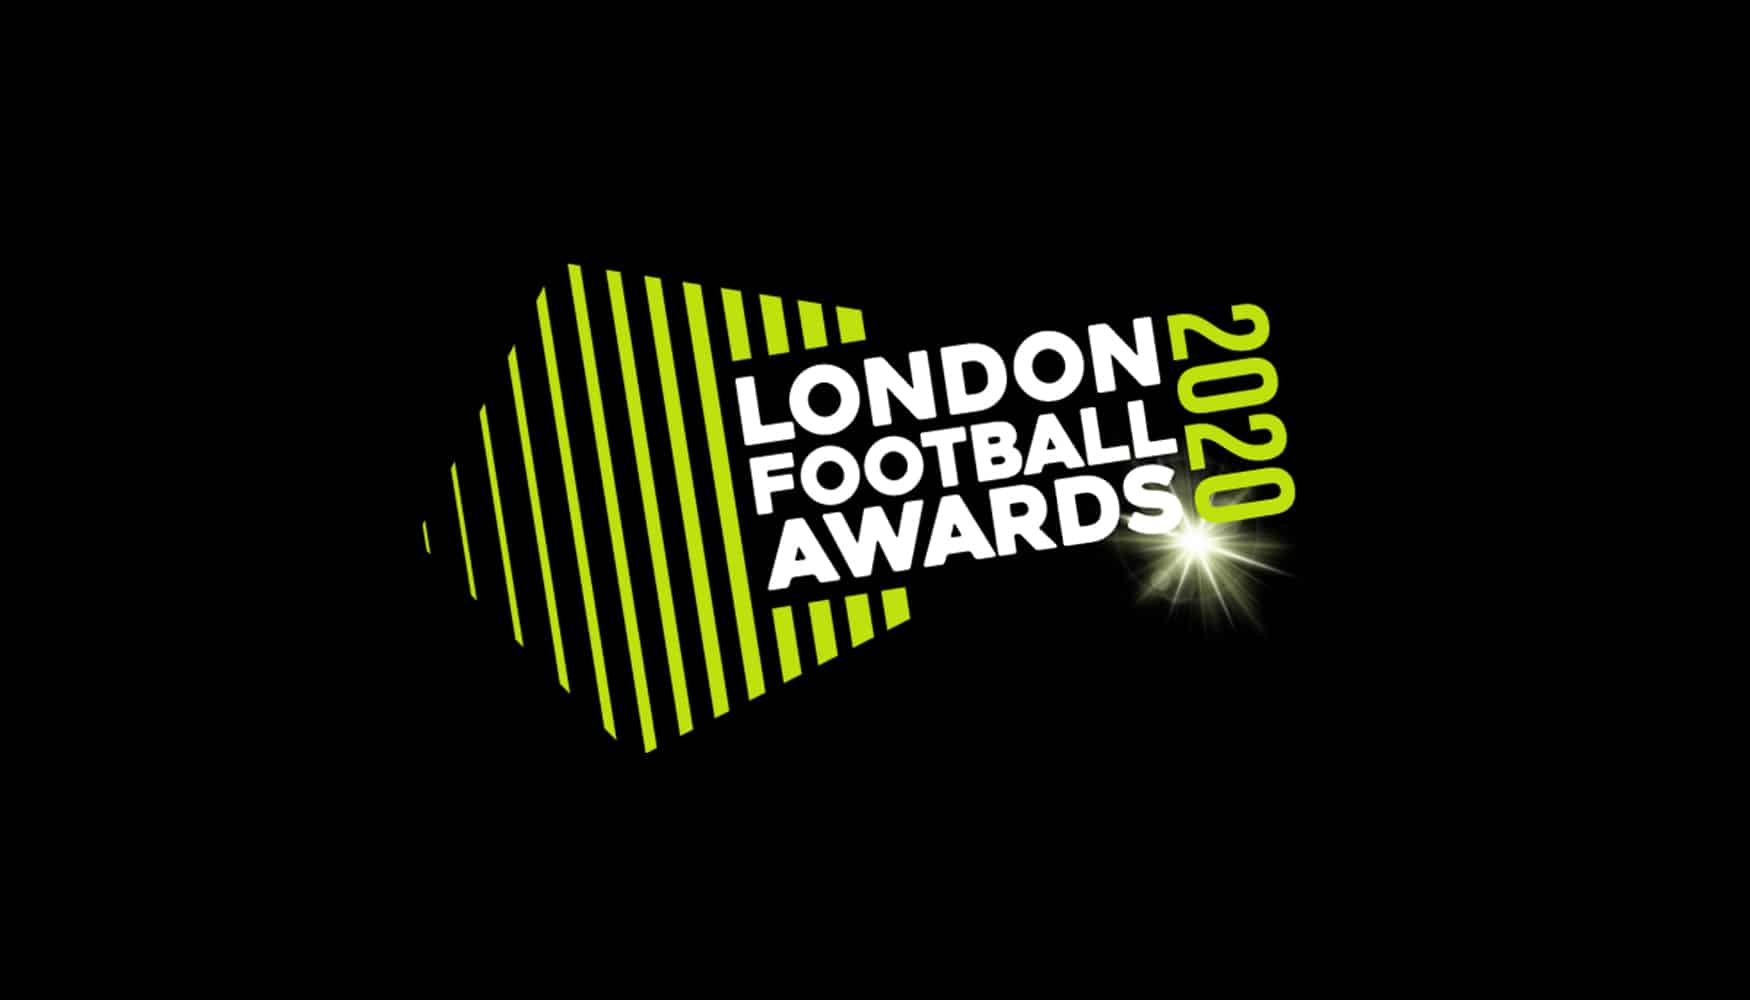 London Football Awards 2020 event identity